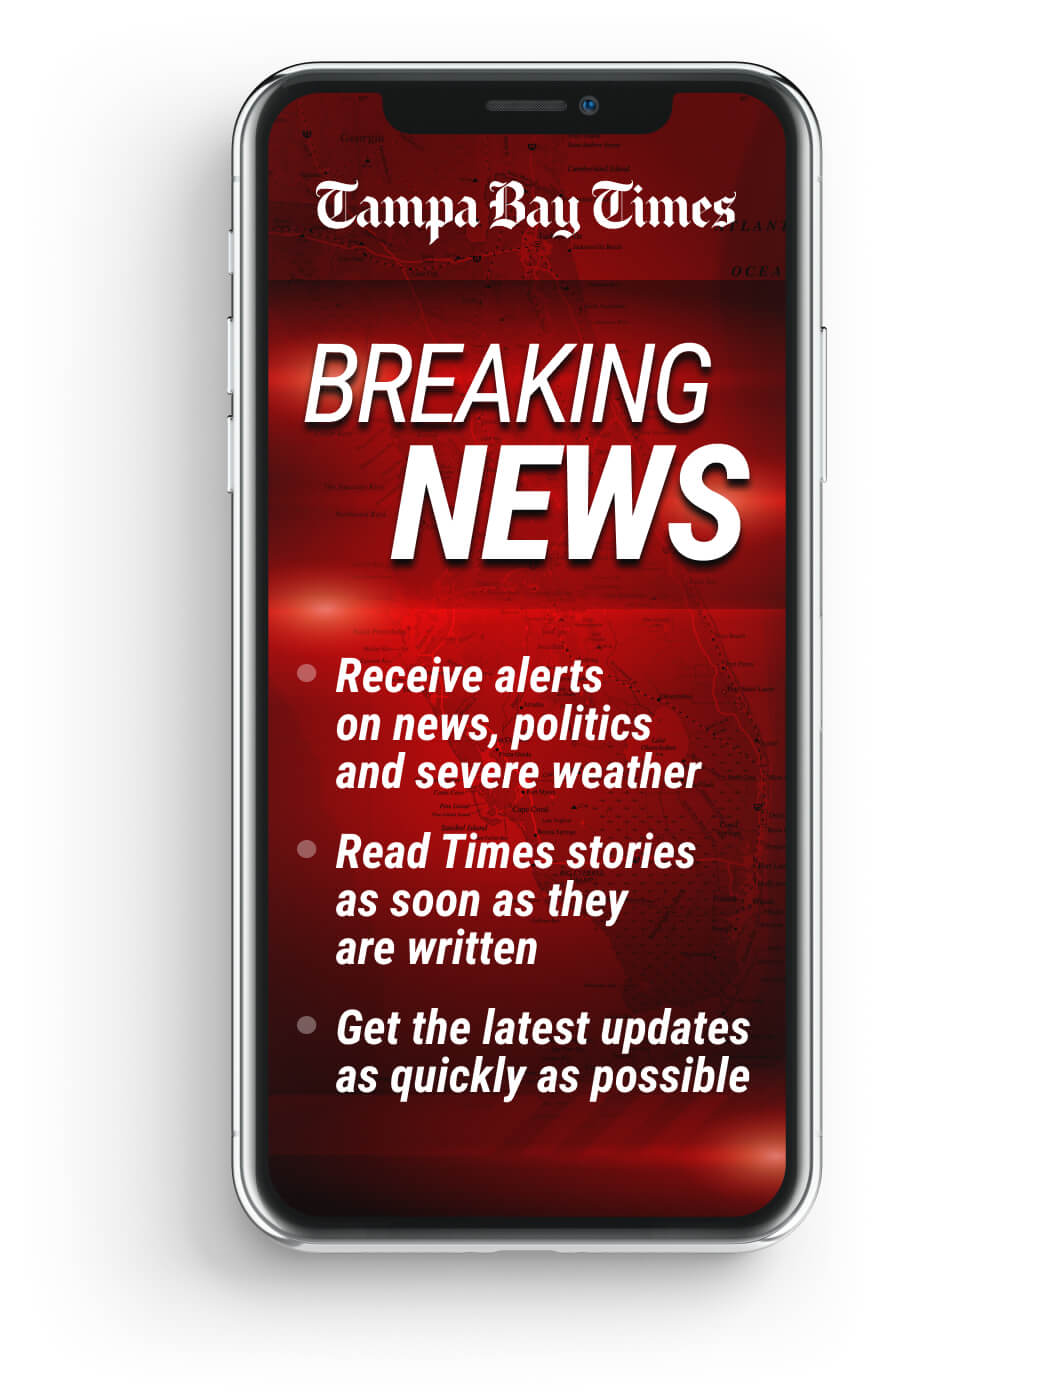 The Tampa Bay Times 'Breaking News' newsletter